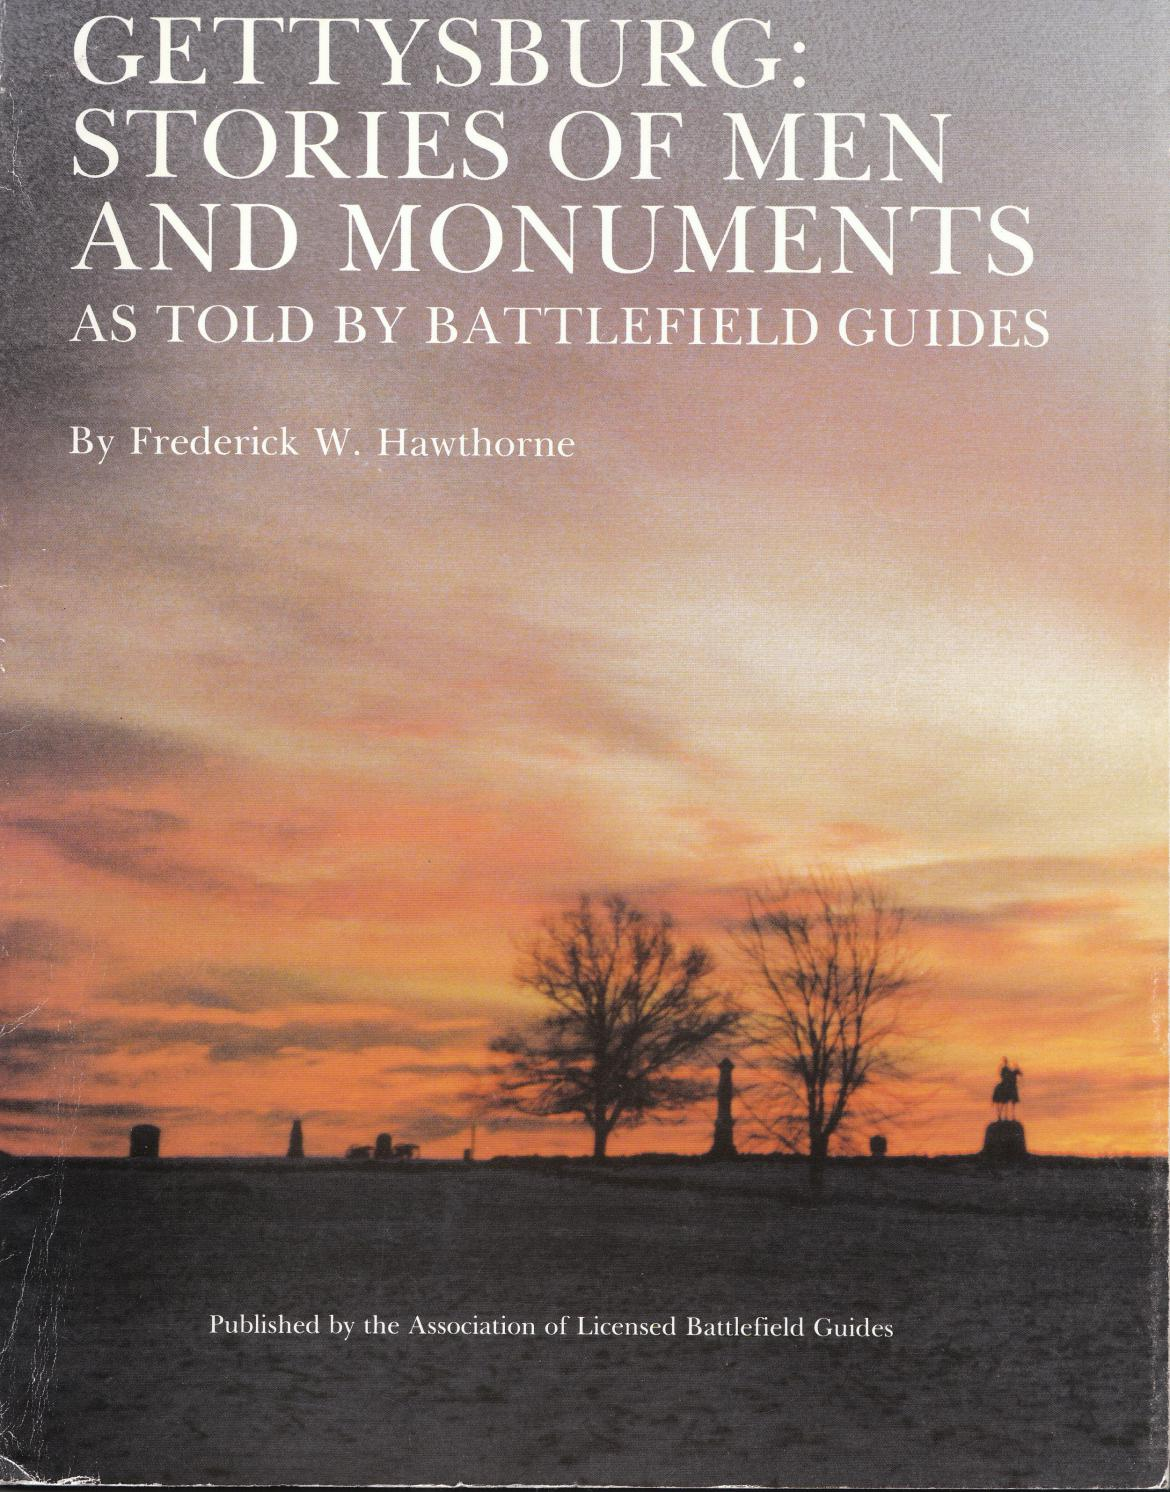 140 Places Every Guide Should Know Part 4: Gettysburg LBG Fred Hawthorne